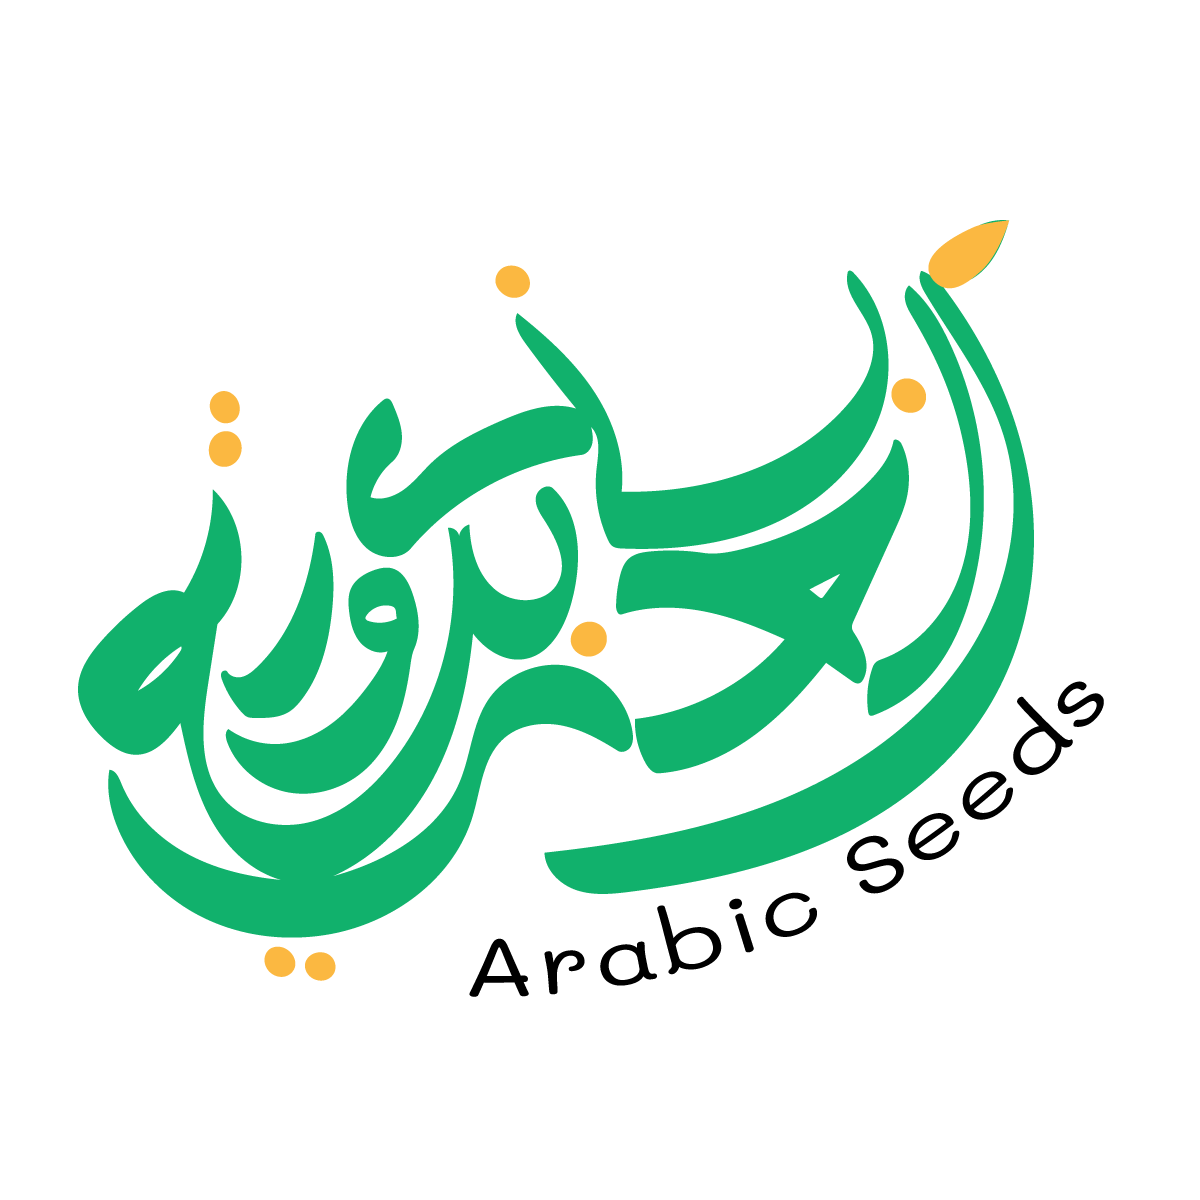 As a student of the Arabic language...